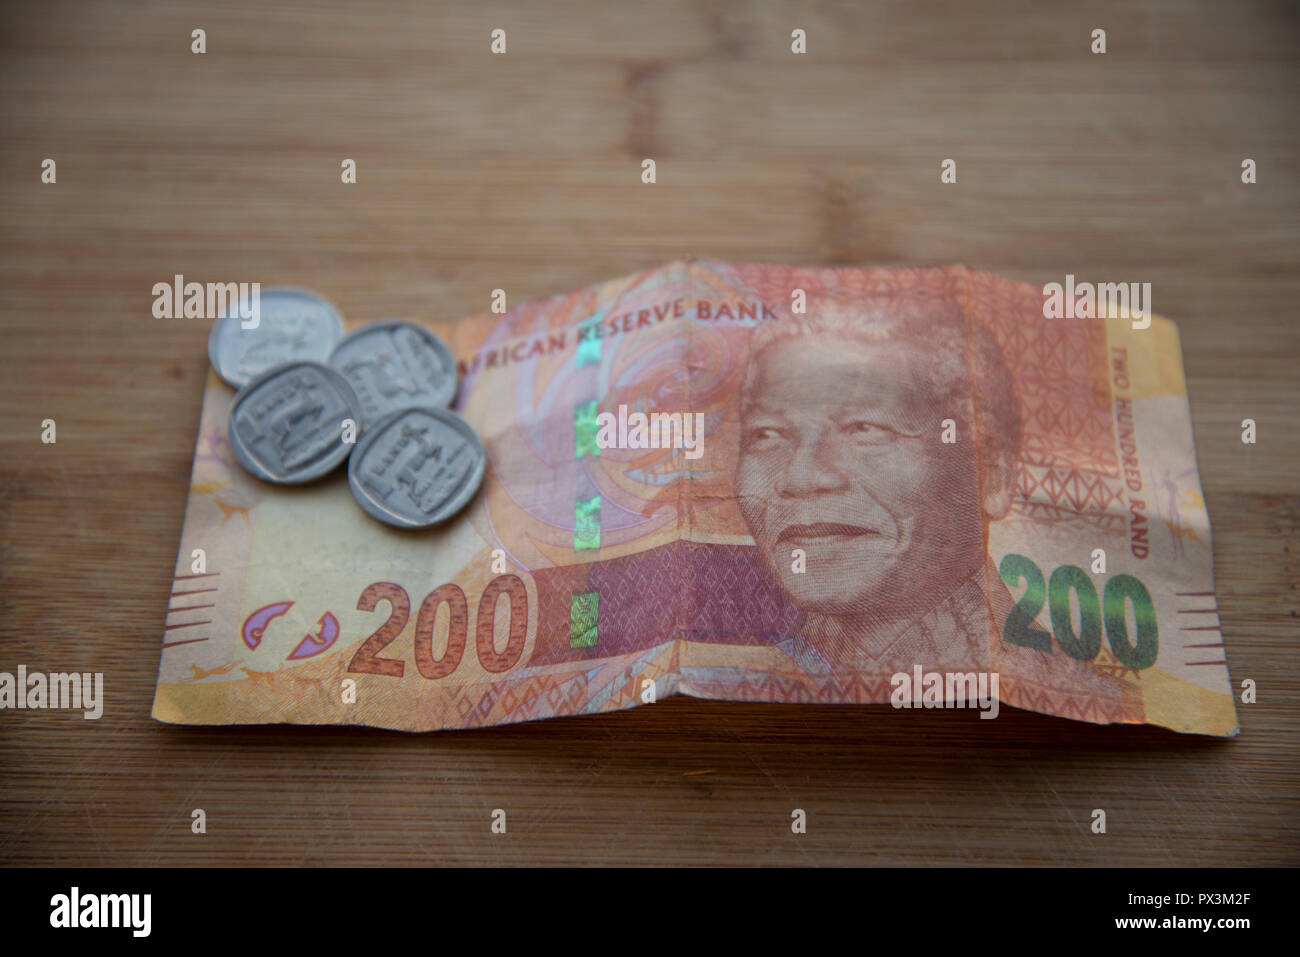 Johannesburg, South Africa, 19 October, 2018. The South African Rand re-gained some of its recent losses and headed into the weekend a little stronger. Credit: Eva-Lotta Jansson/Alamy Live News - Stock Image